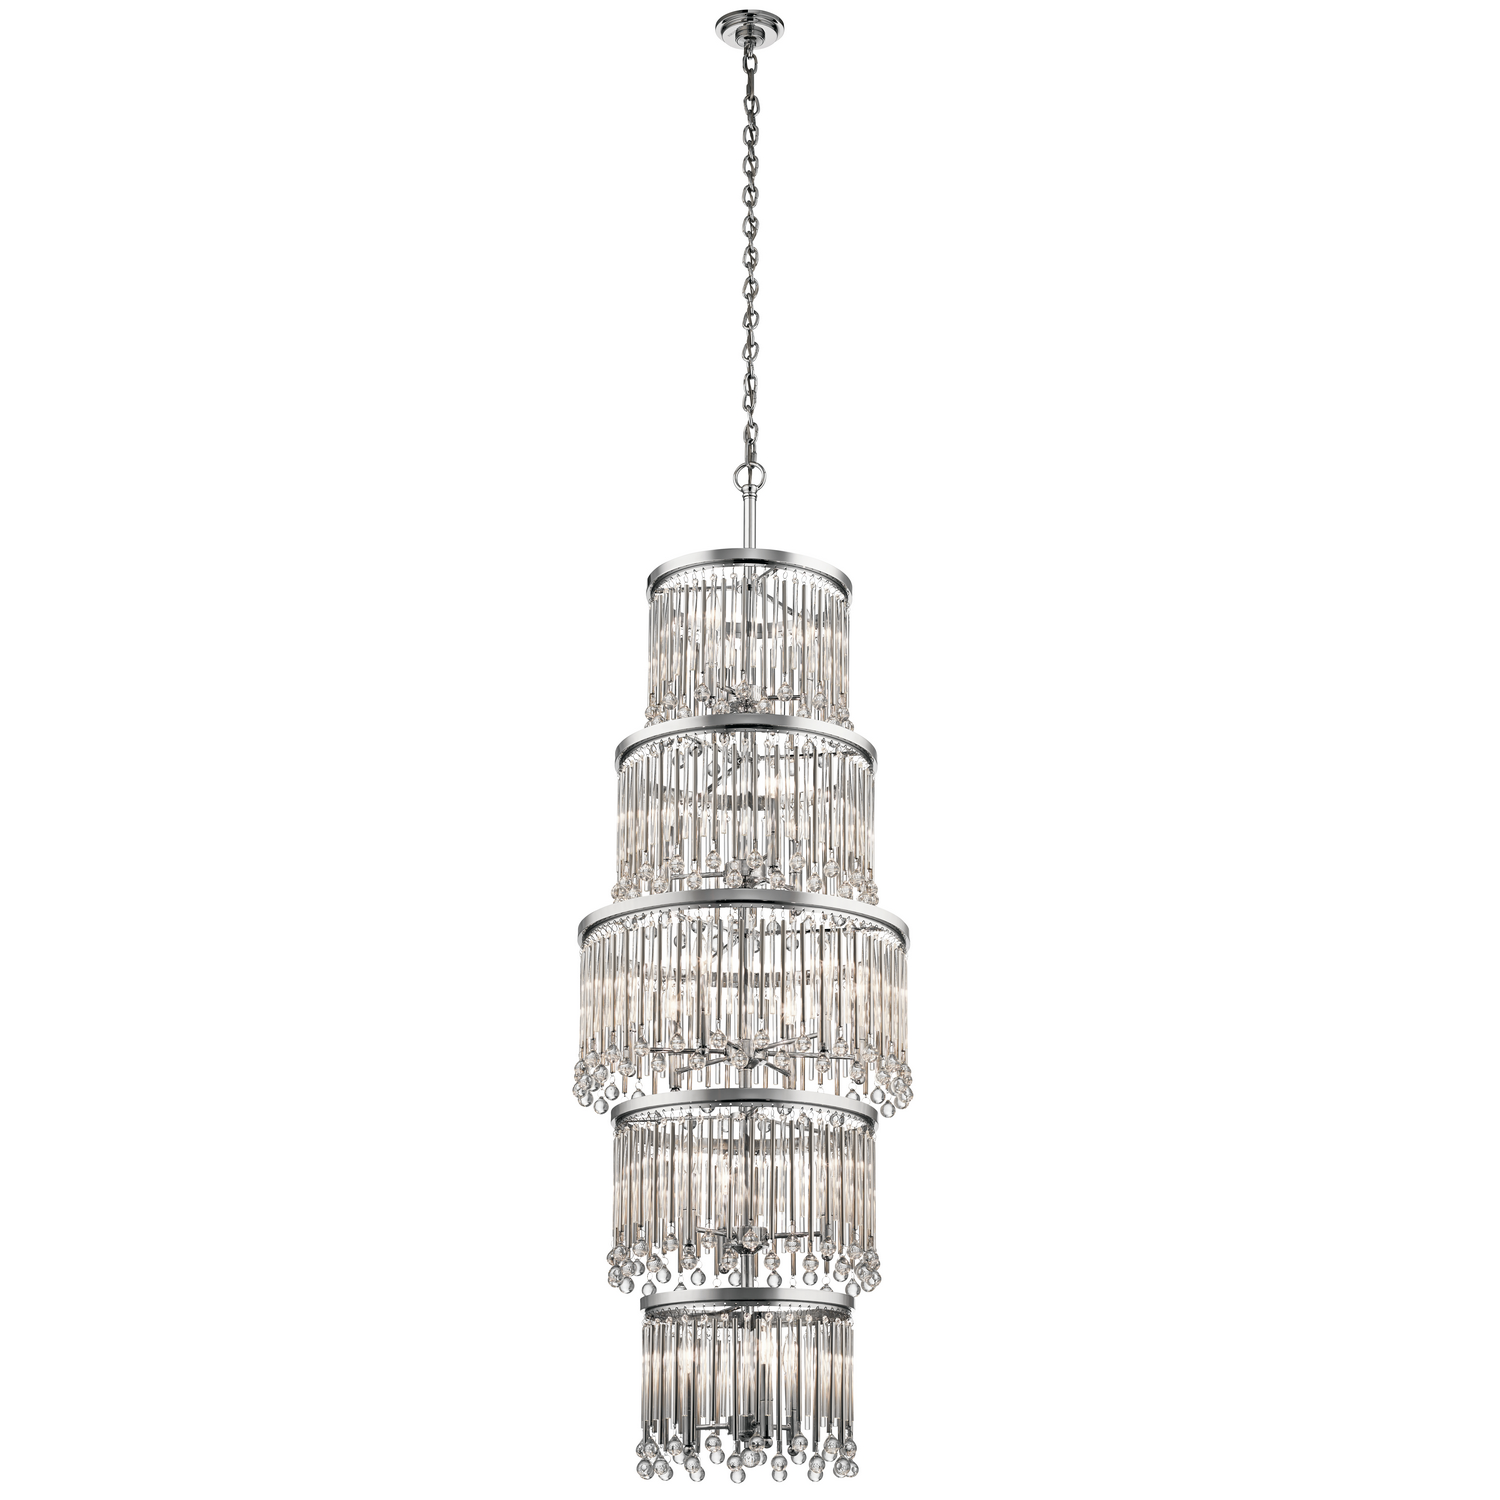 18 Light Chandelier from the Piper collection by Kichler 43758CH